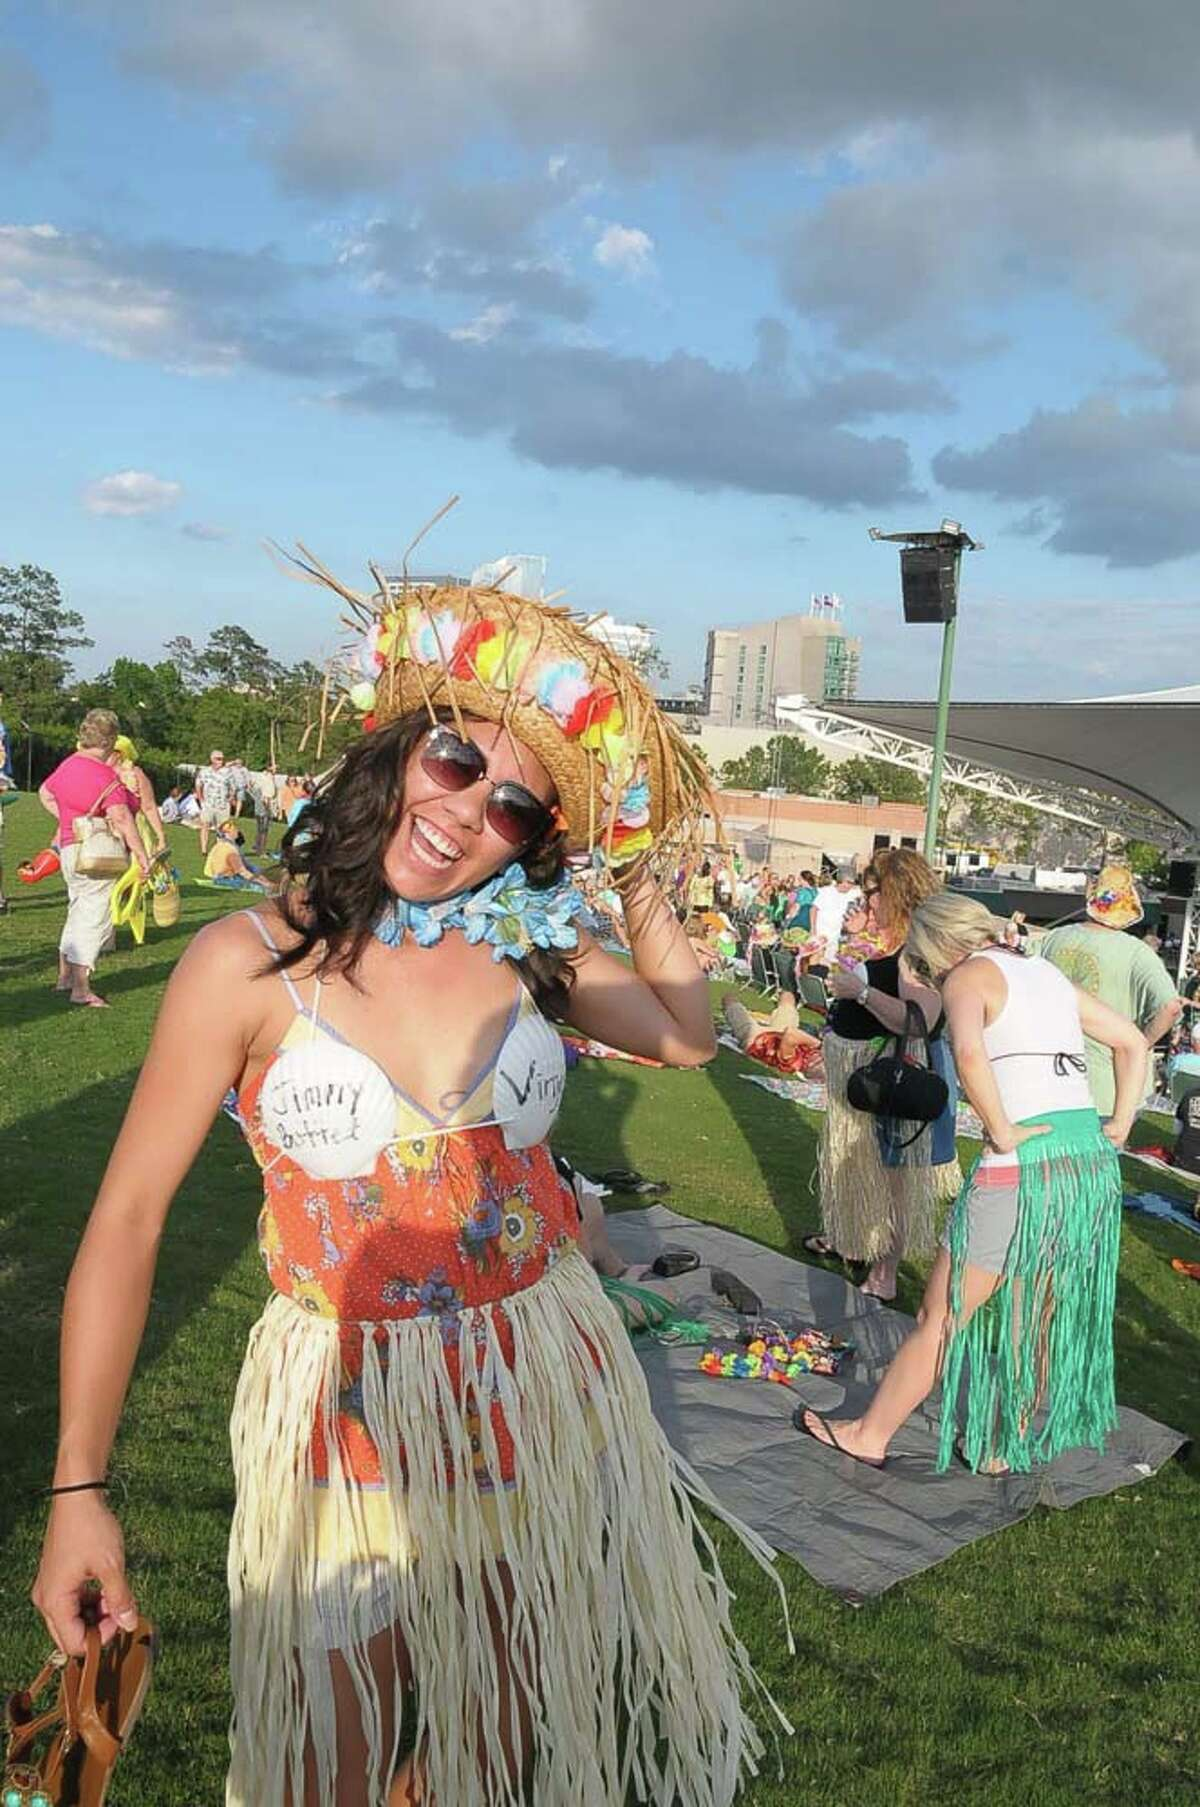 Jimmy Buffett fans dress up in their finest for his show at Cynthia Woods Mitchell Pavilion in The Woodlands Thursday May 29, 2014. Photo by Tony Bullard.